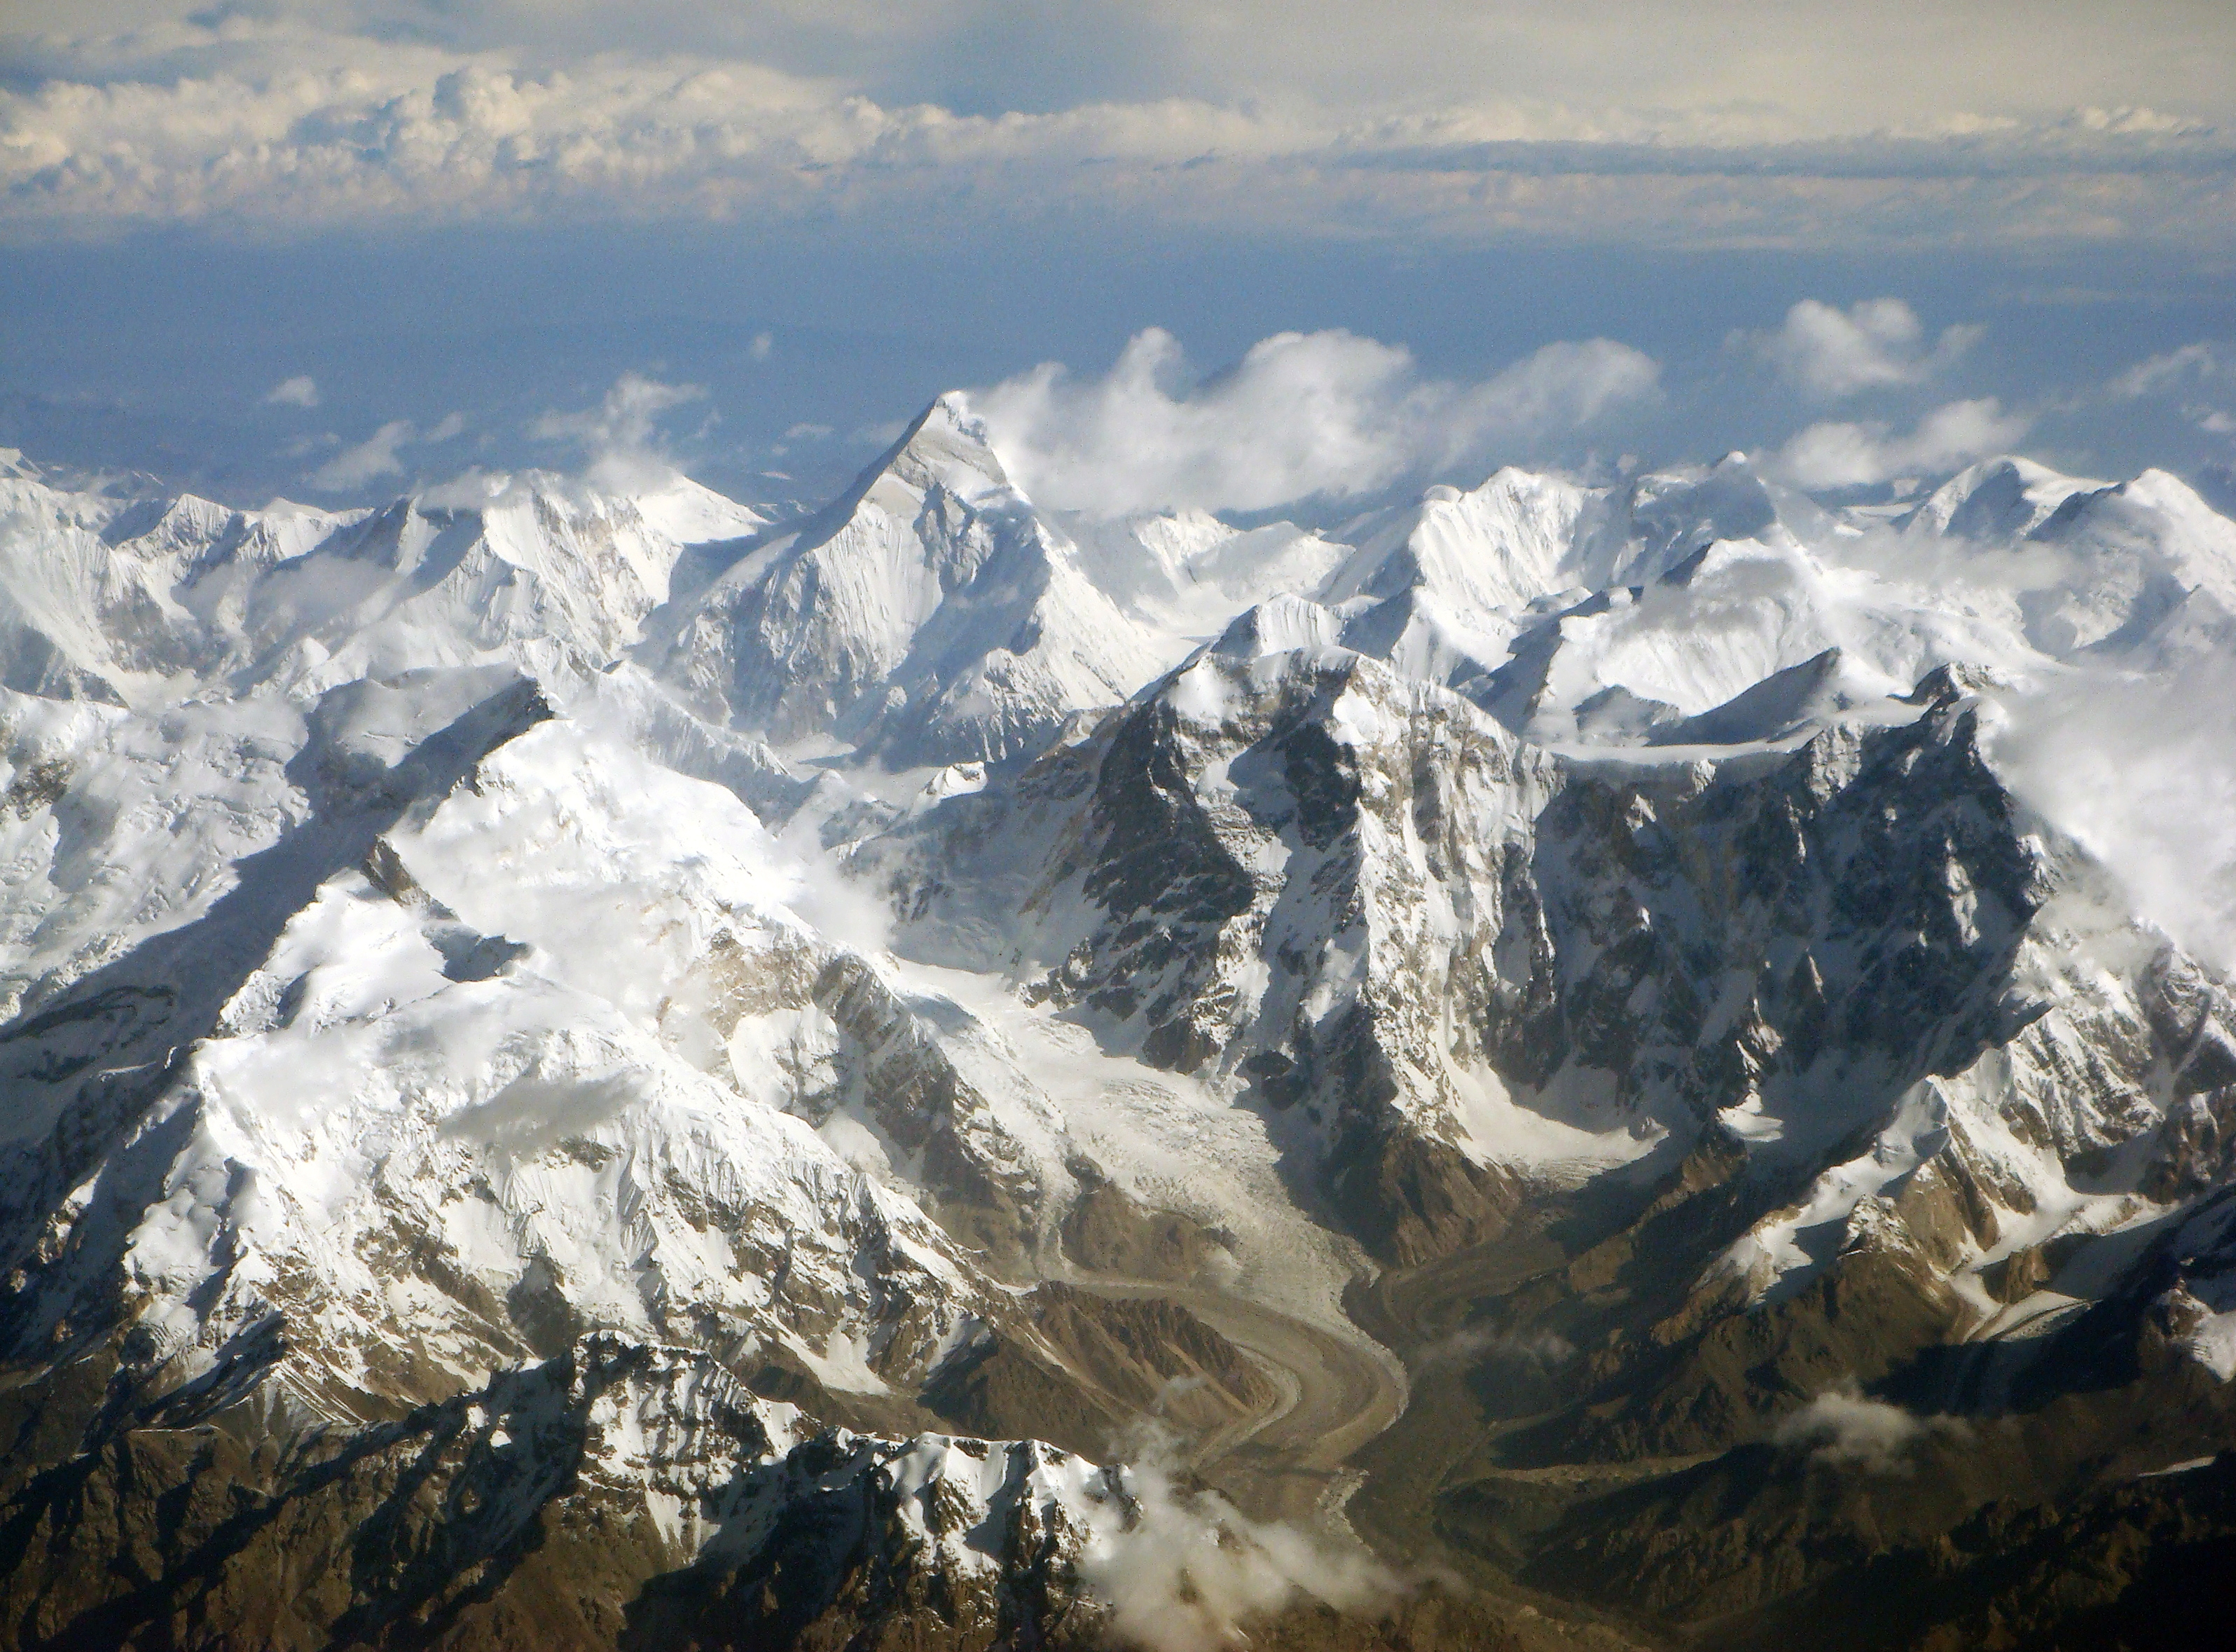 News from Tien Shan